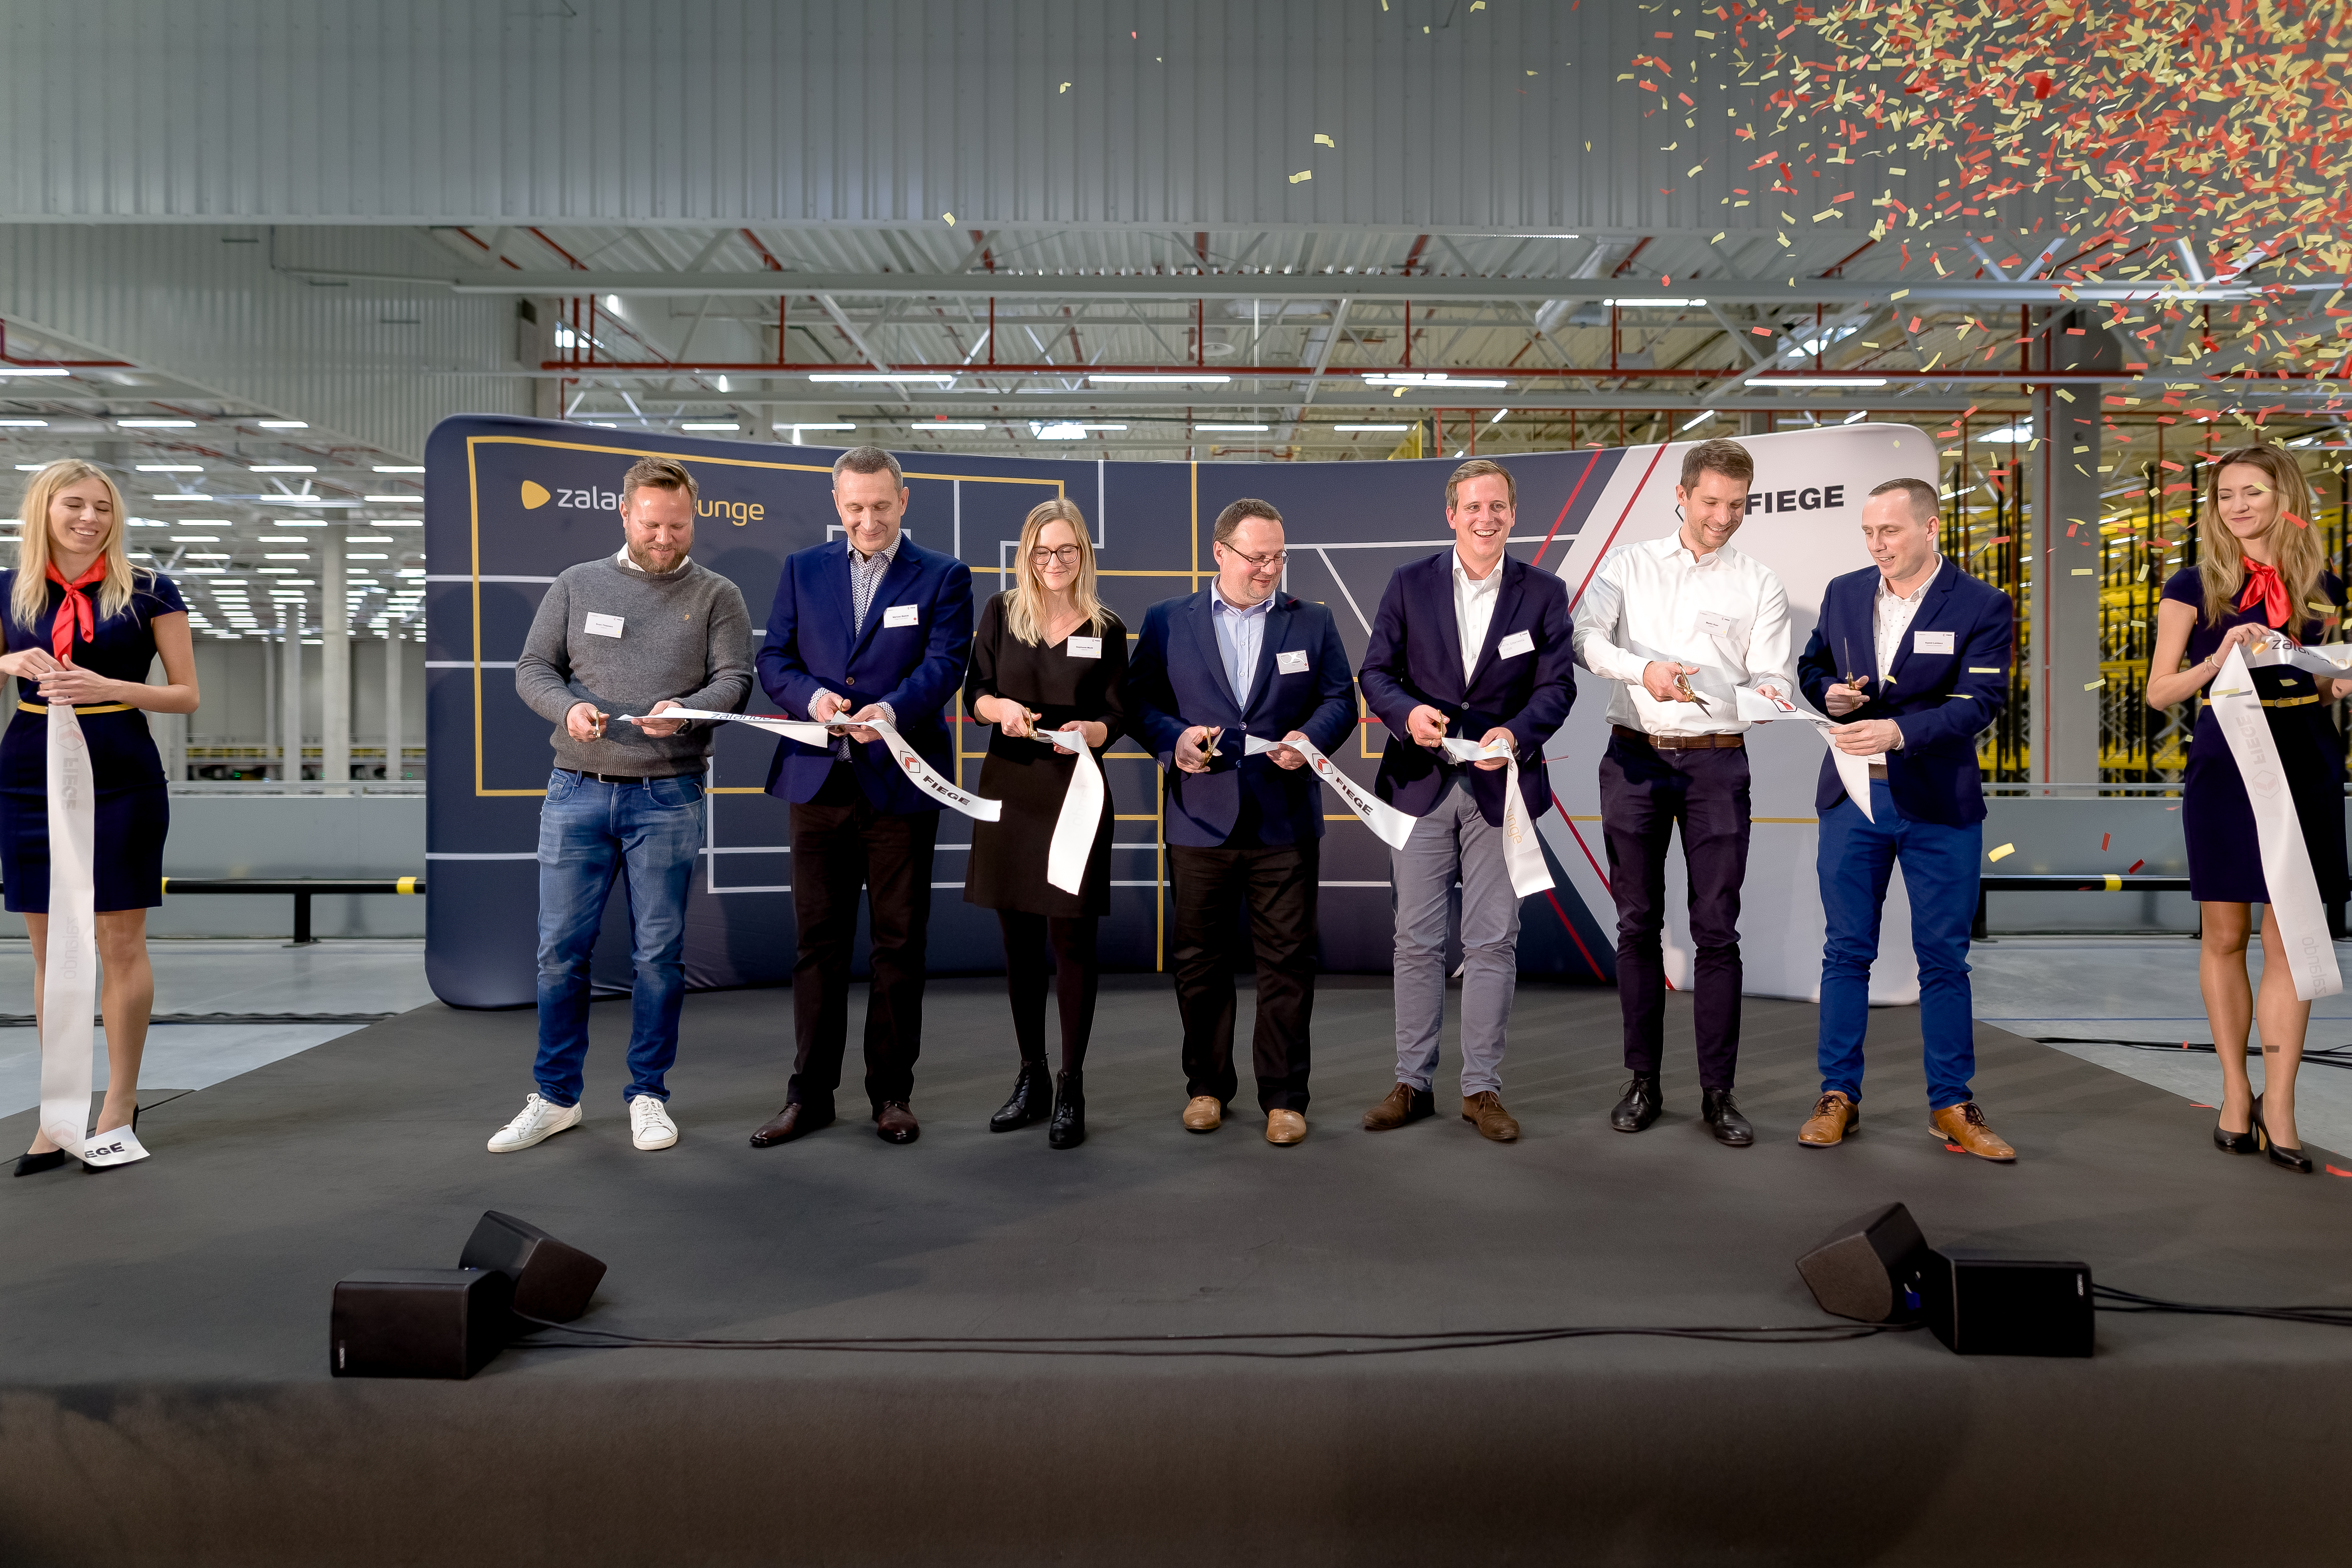 Zalando SE Olsztynek Ramp Up Official Opening